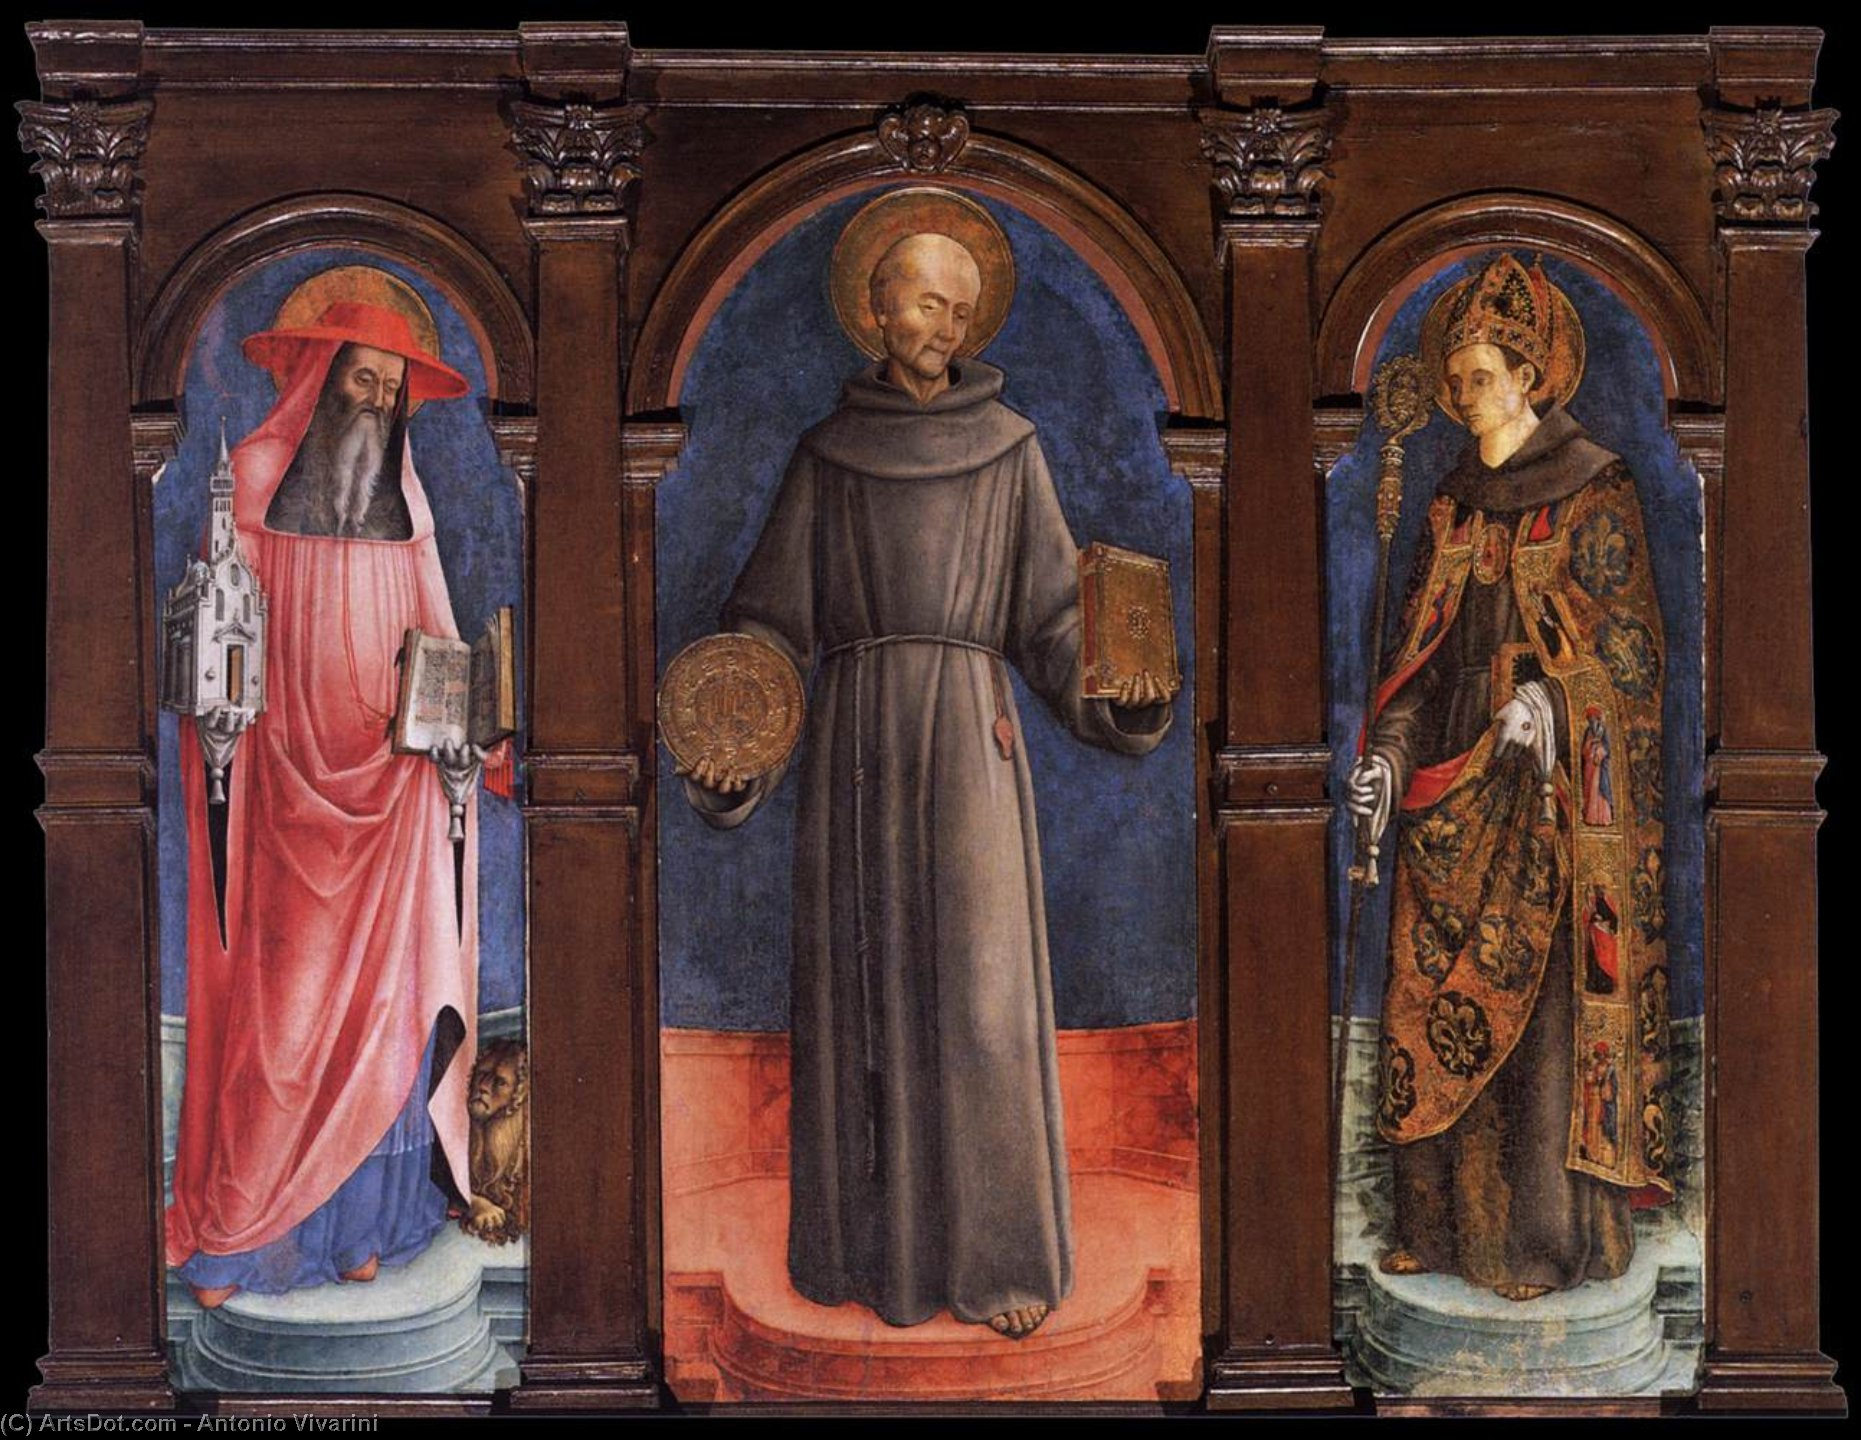 Sts Jerome, Bernardino of Siena, and Louis of Toulouse, Tempera by Antonio Vivarini (1440-1480, Italy)